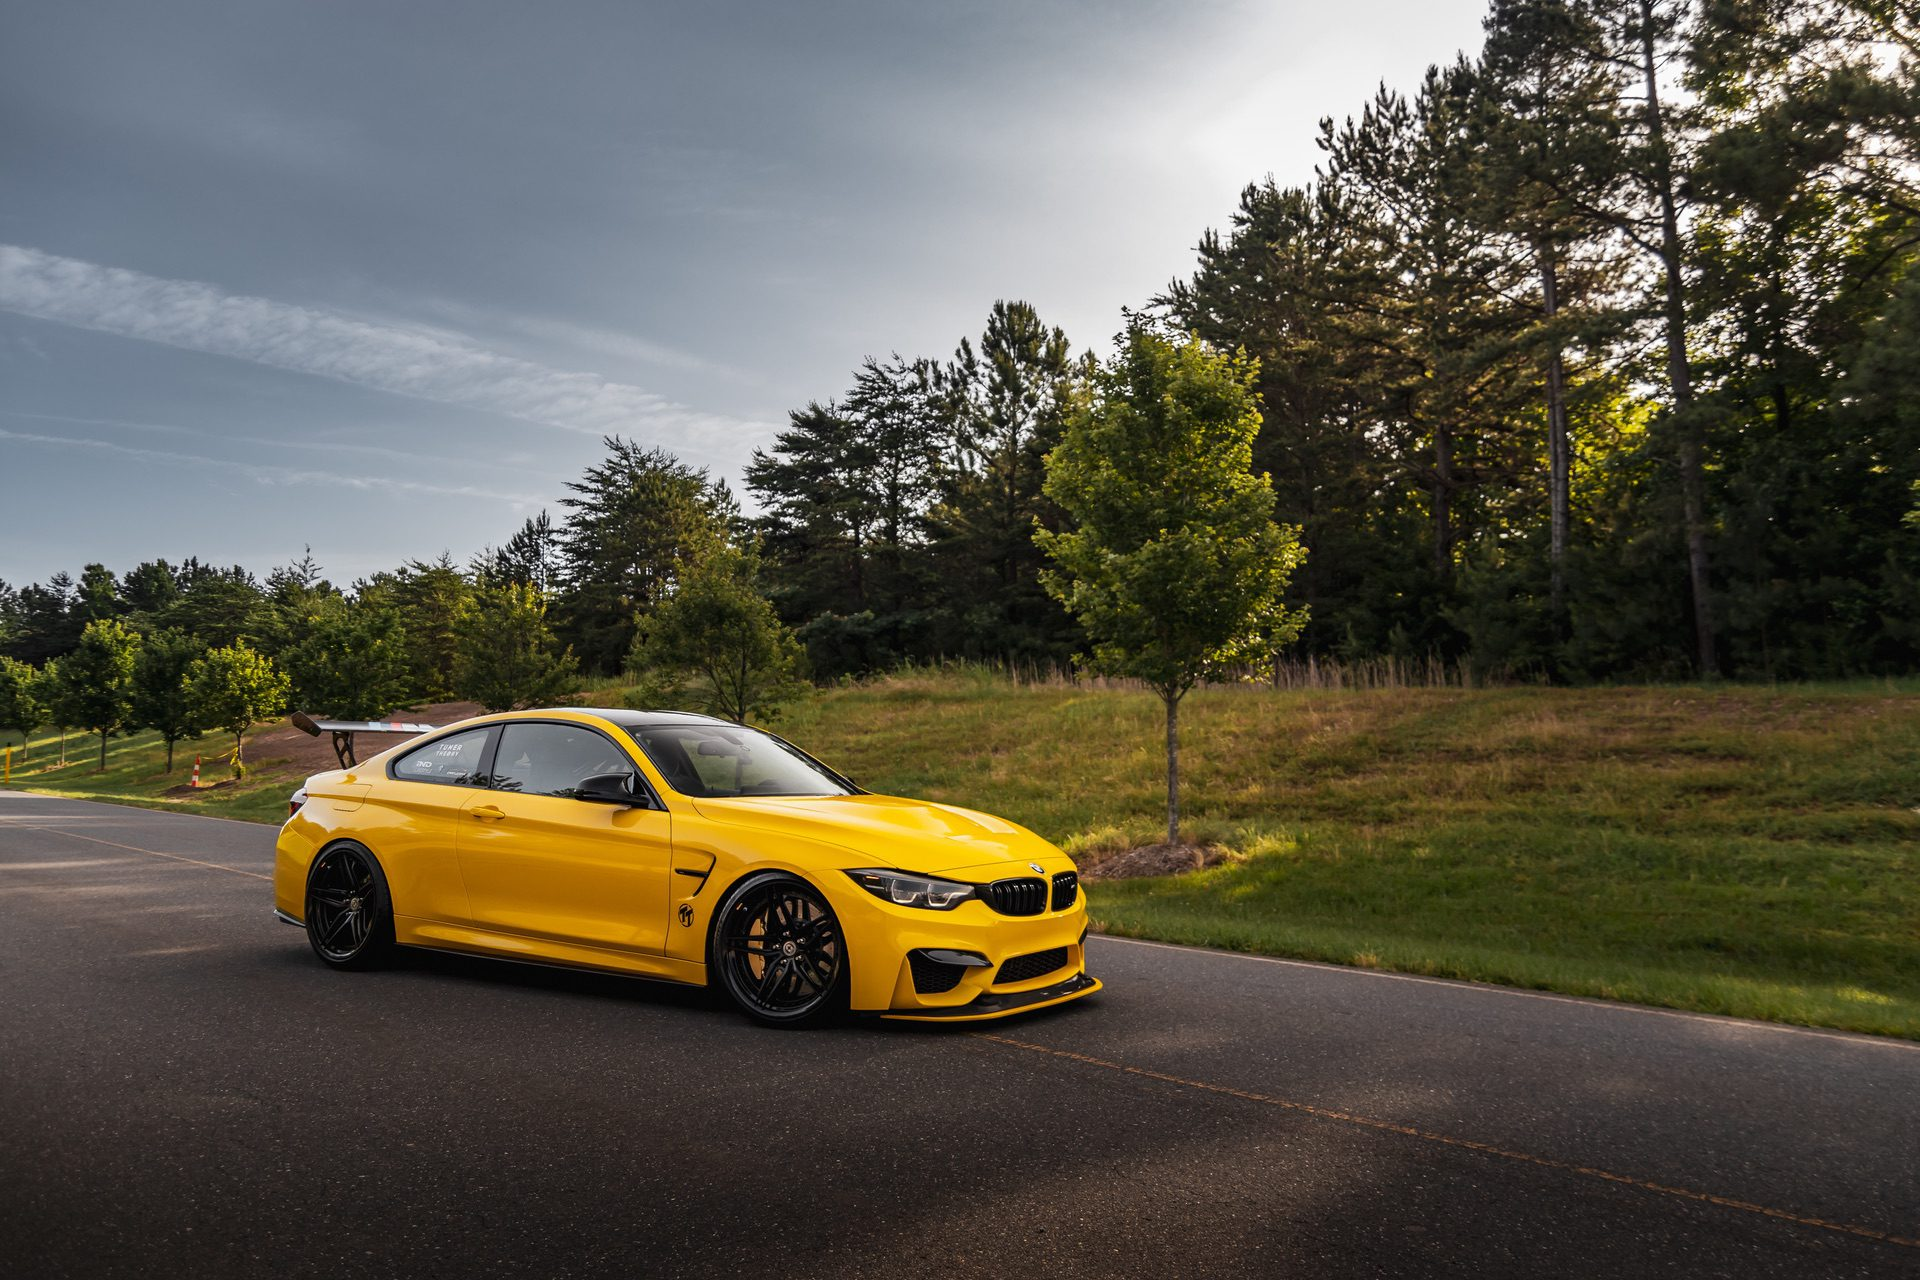 Heavily Modded Bmw M4 Gts Looks Stunning And Ready For The Track